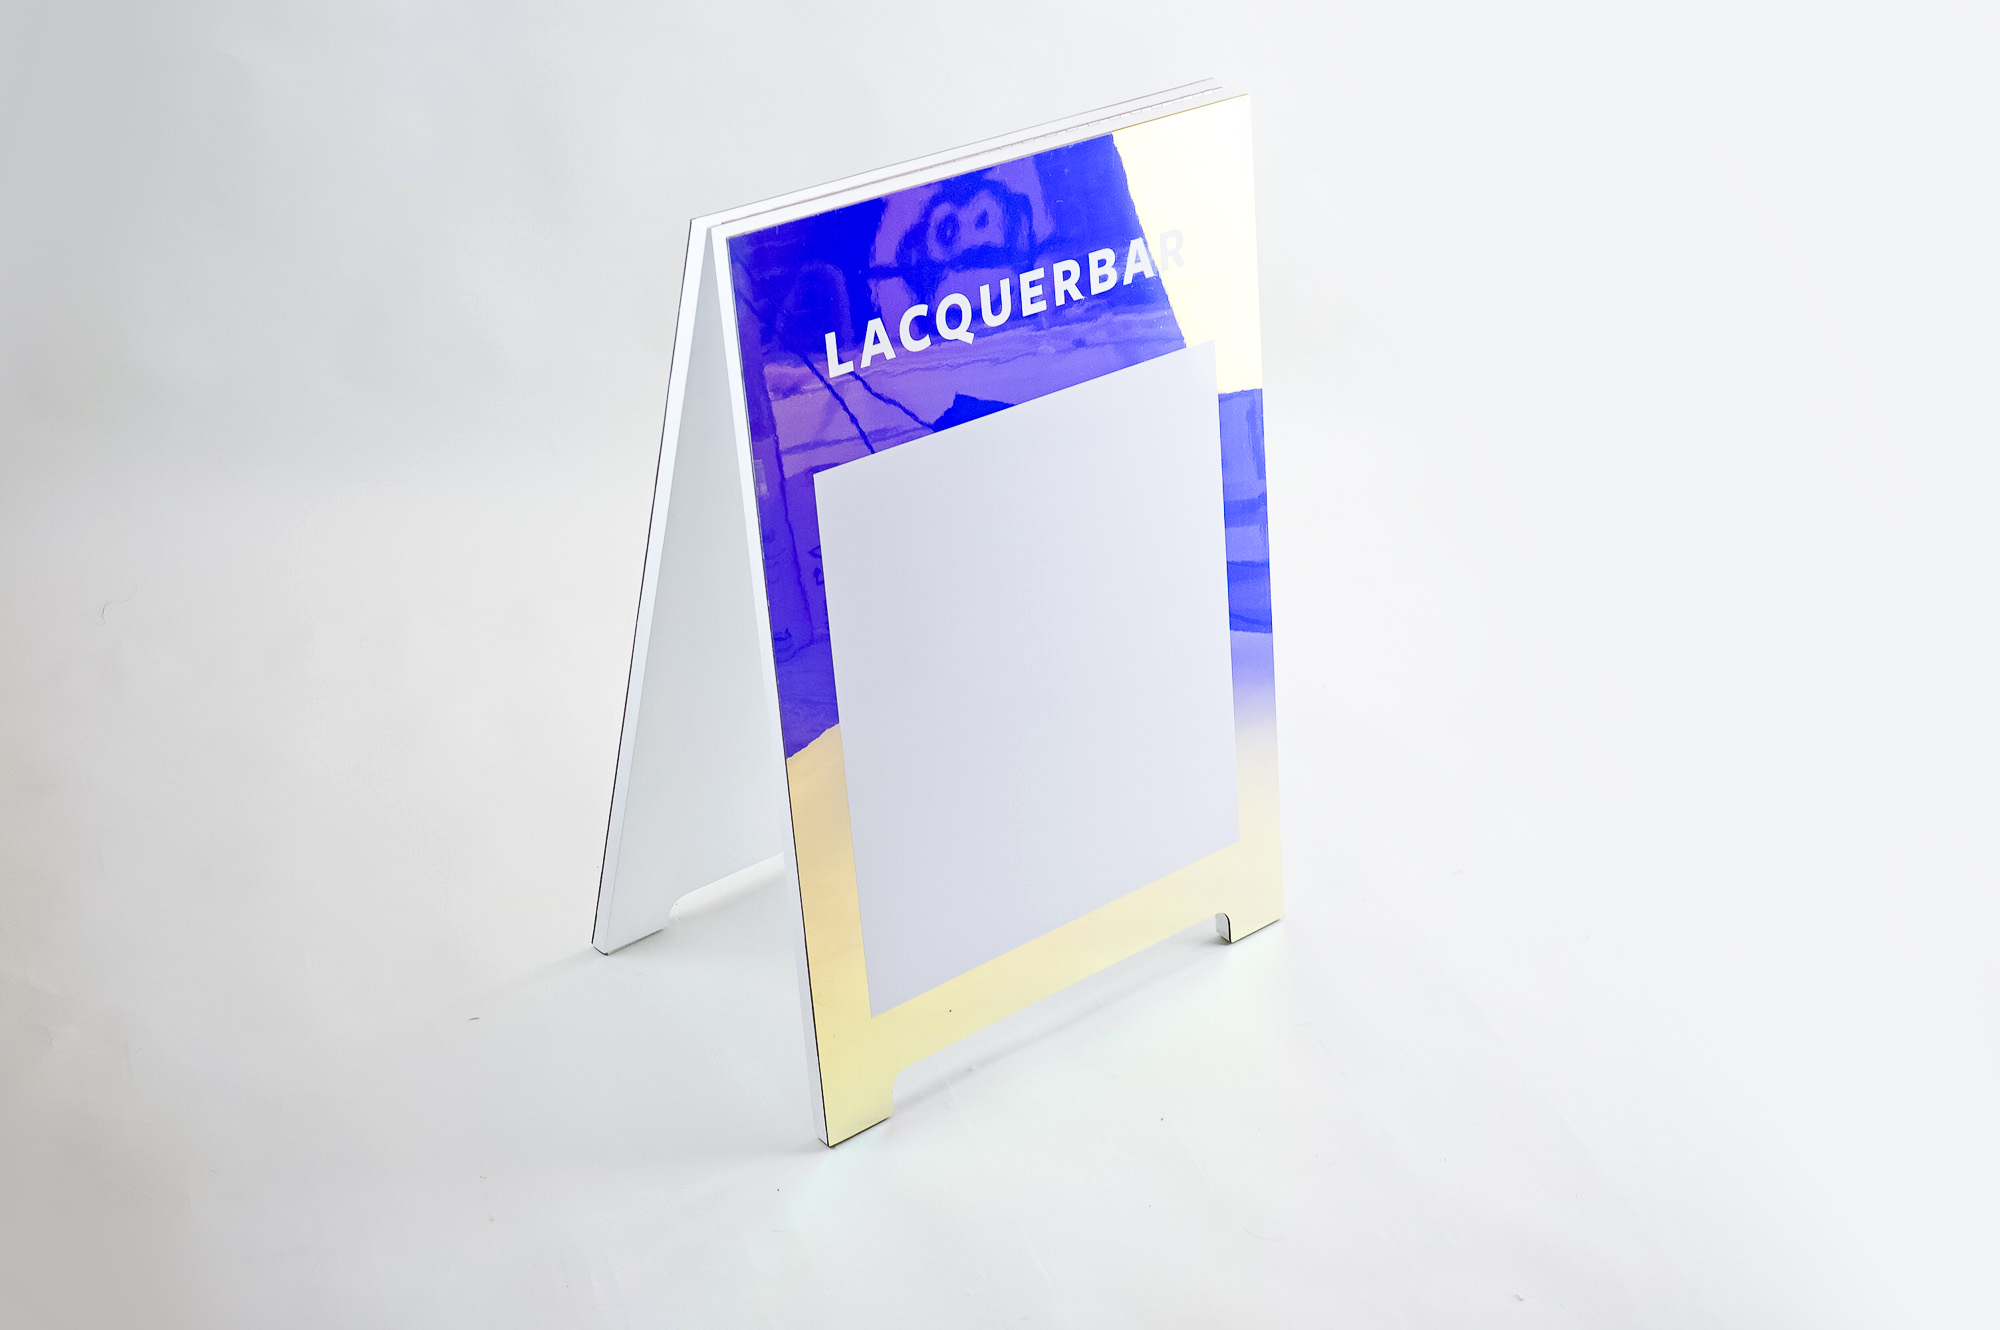 Holographic a-frame/sidewalk sign with whiteboard for Lacquerbar, an urban modern nail salon and online beauty brand headquartered in Berkeley, CA.